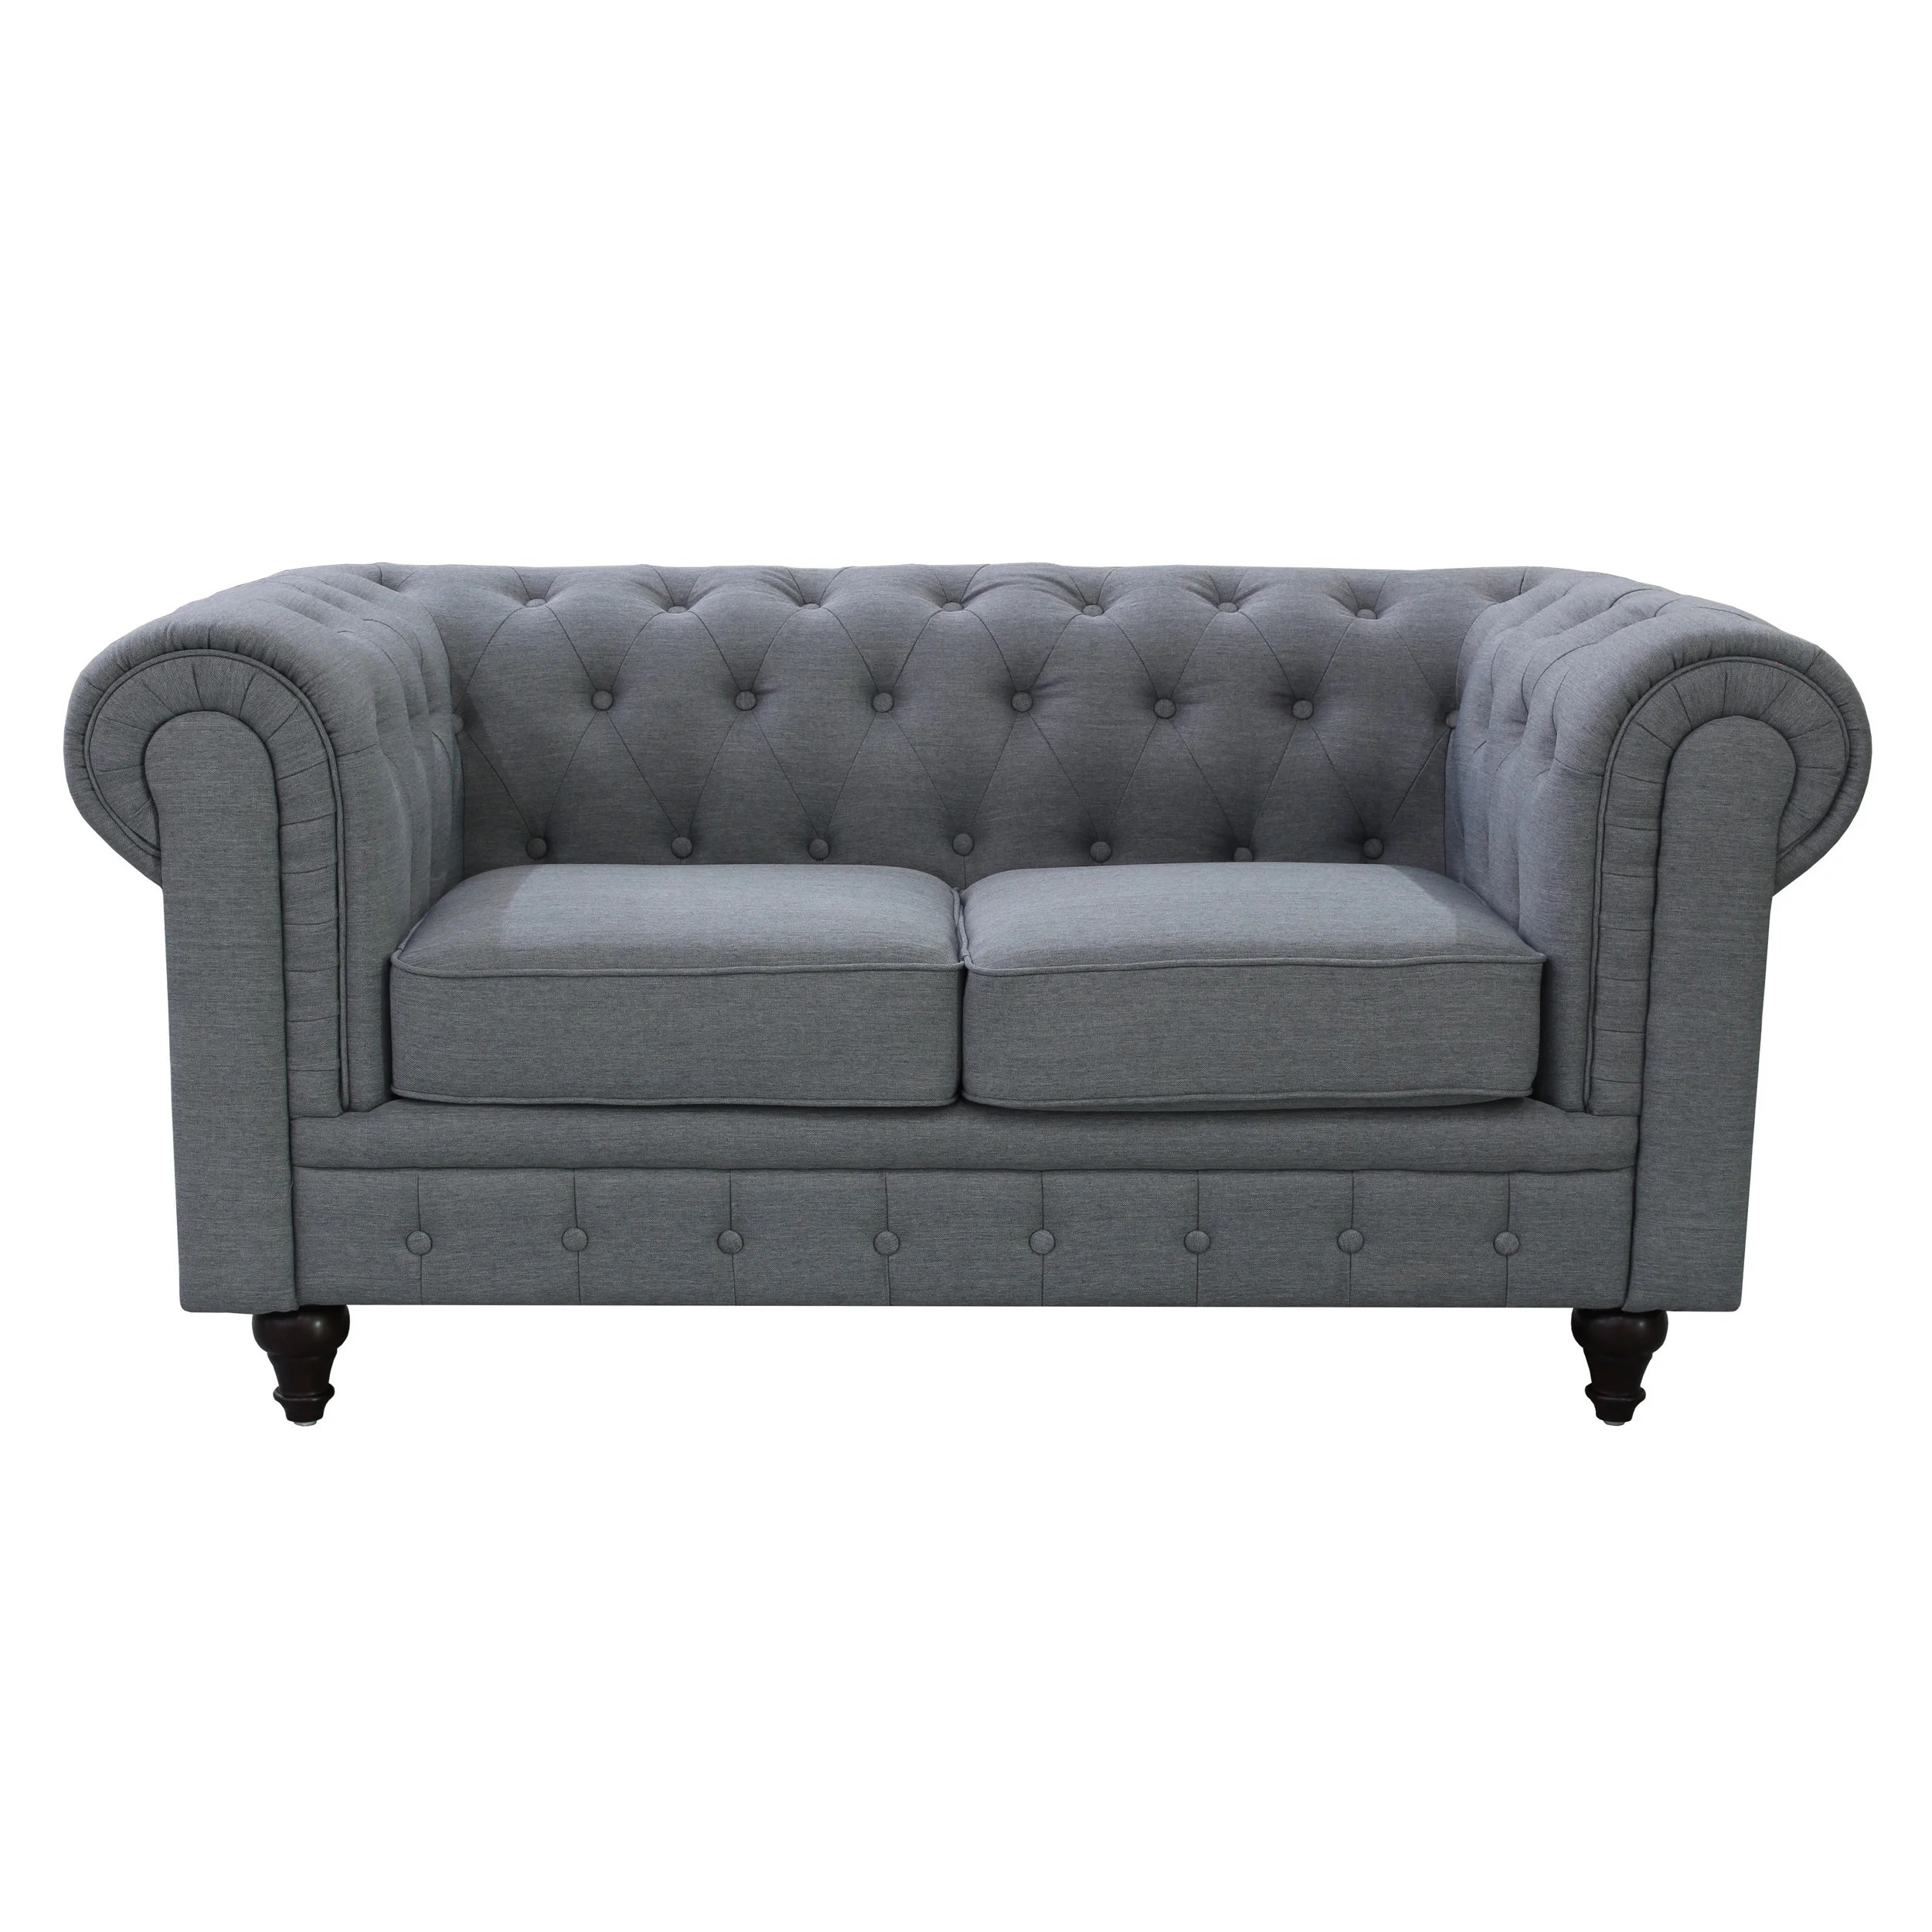 Sofa In Chesterfield Look Grace Grey Linen Fabric Chesterfield Loveseat